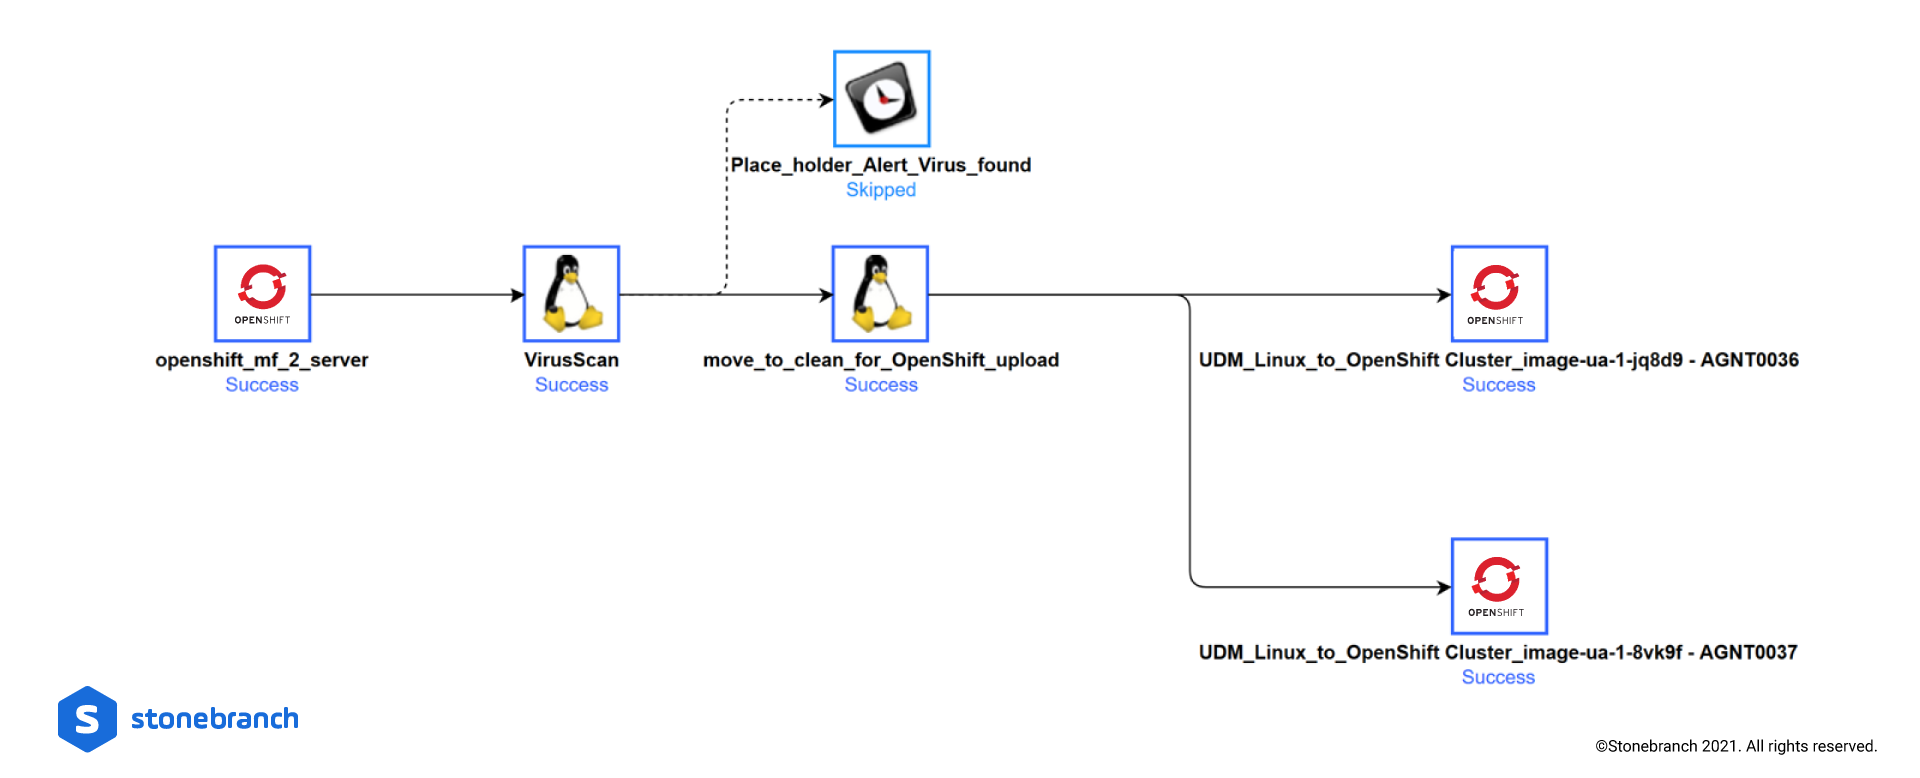 UAC Managed File Transfer from Mainframe to OpenShift